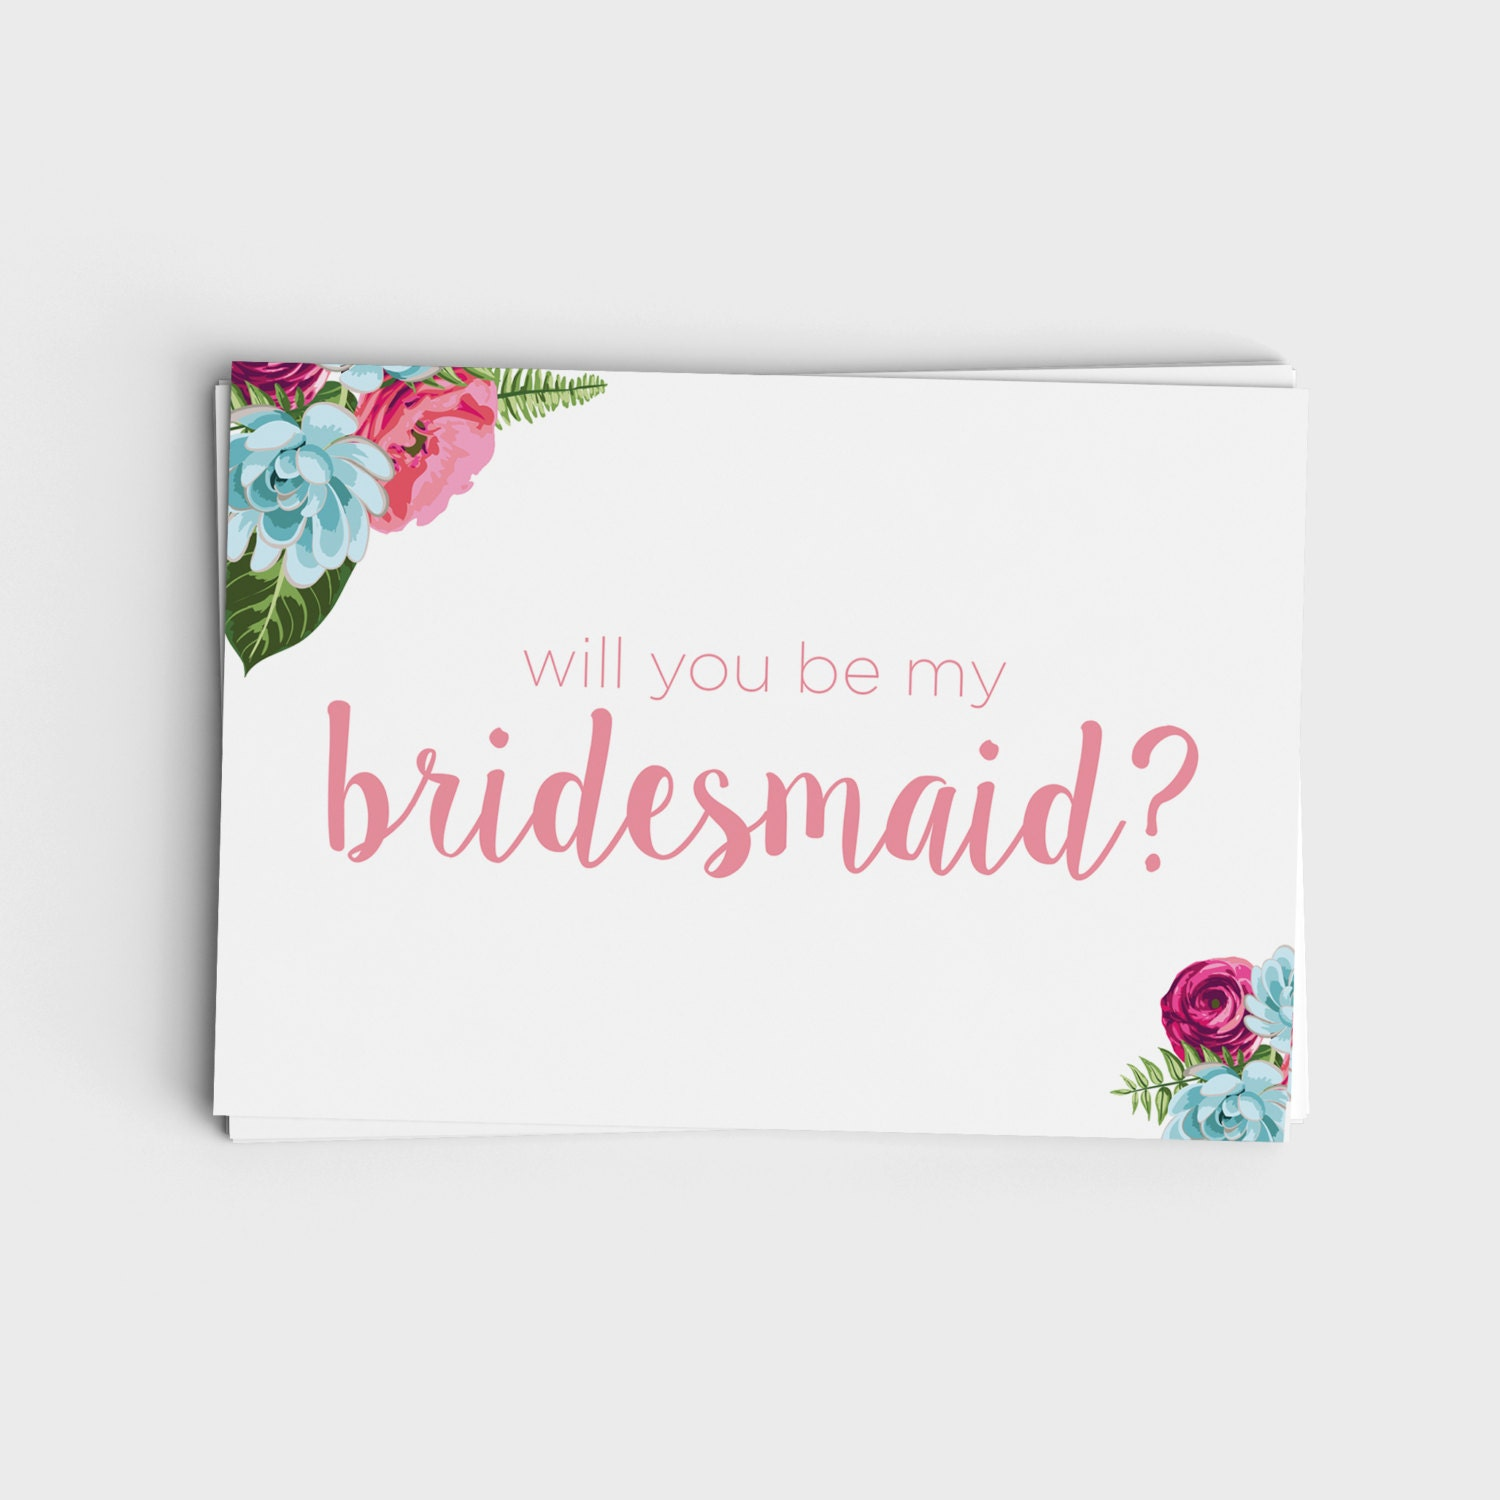 Astounding image with printable will you be my bridesmaid